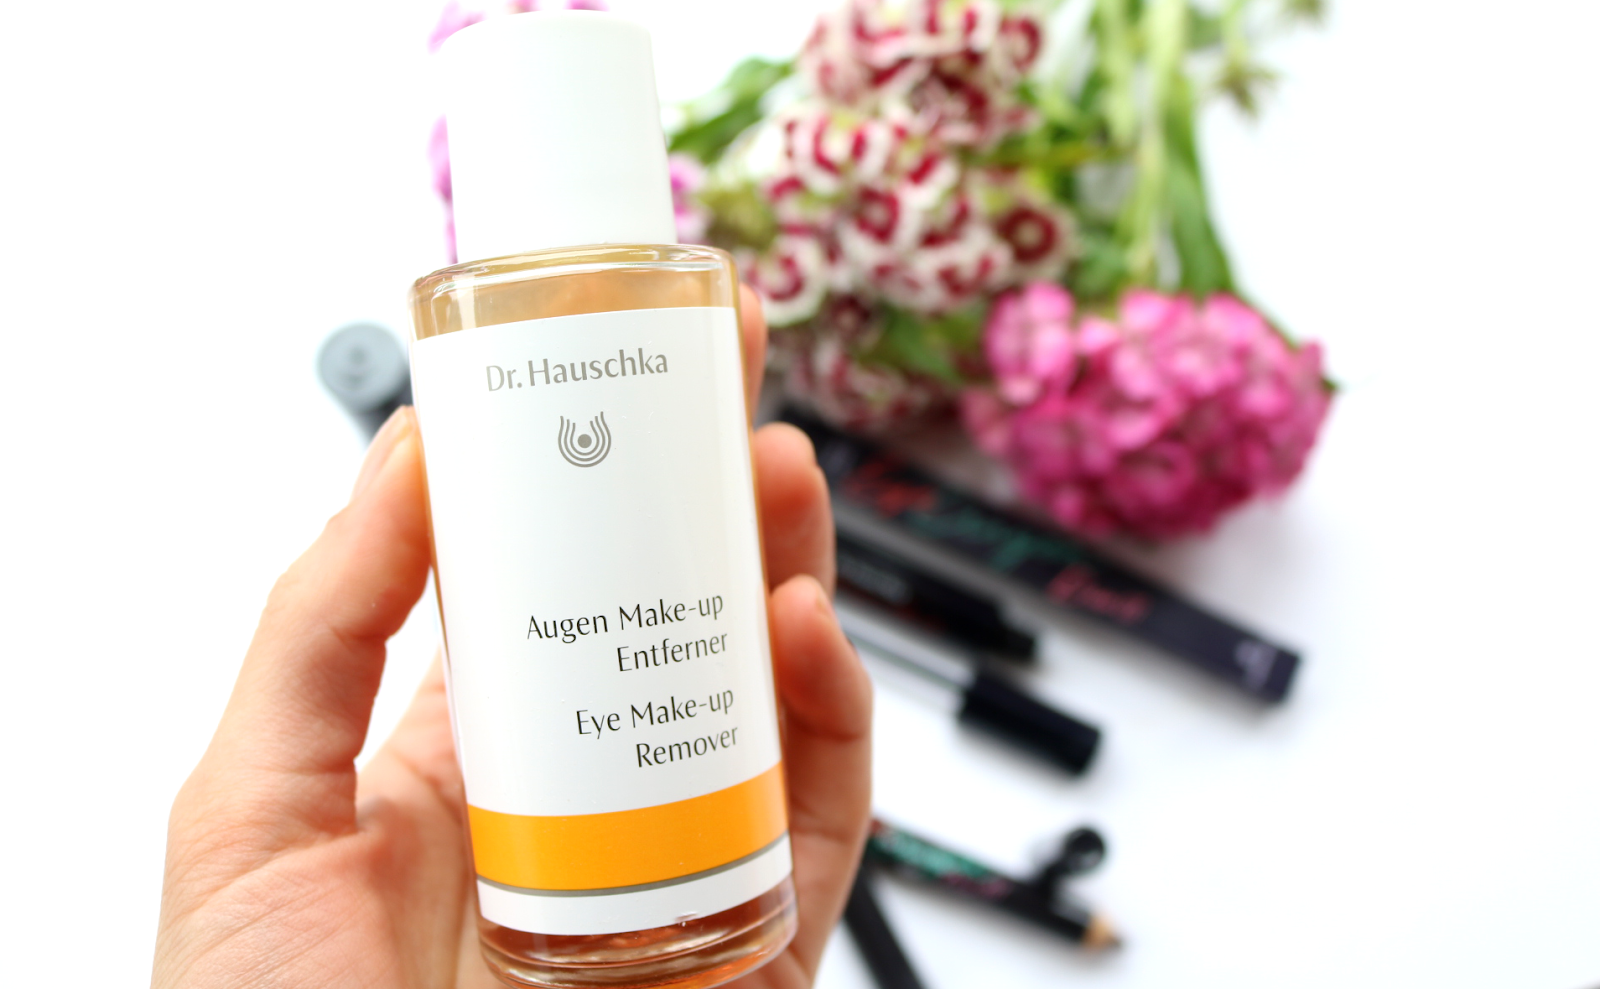 Dr. Hauschka Eye Makeup Remover review